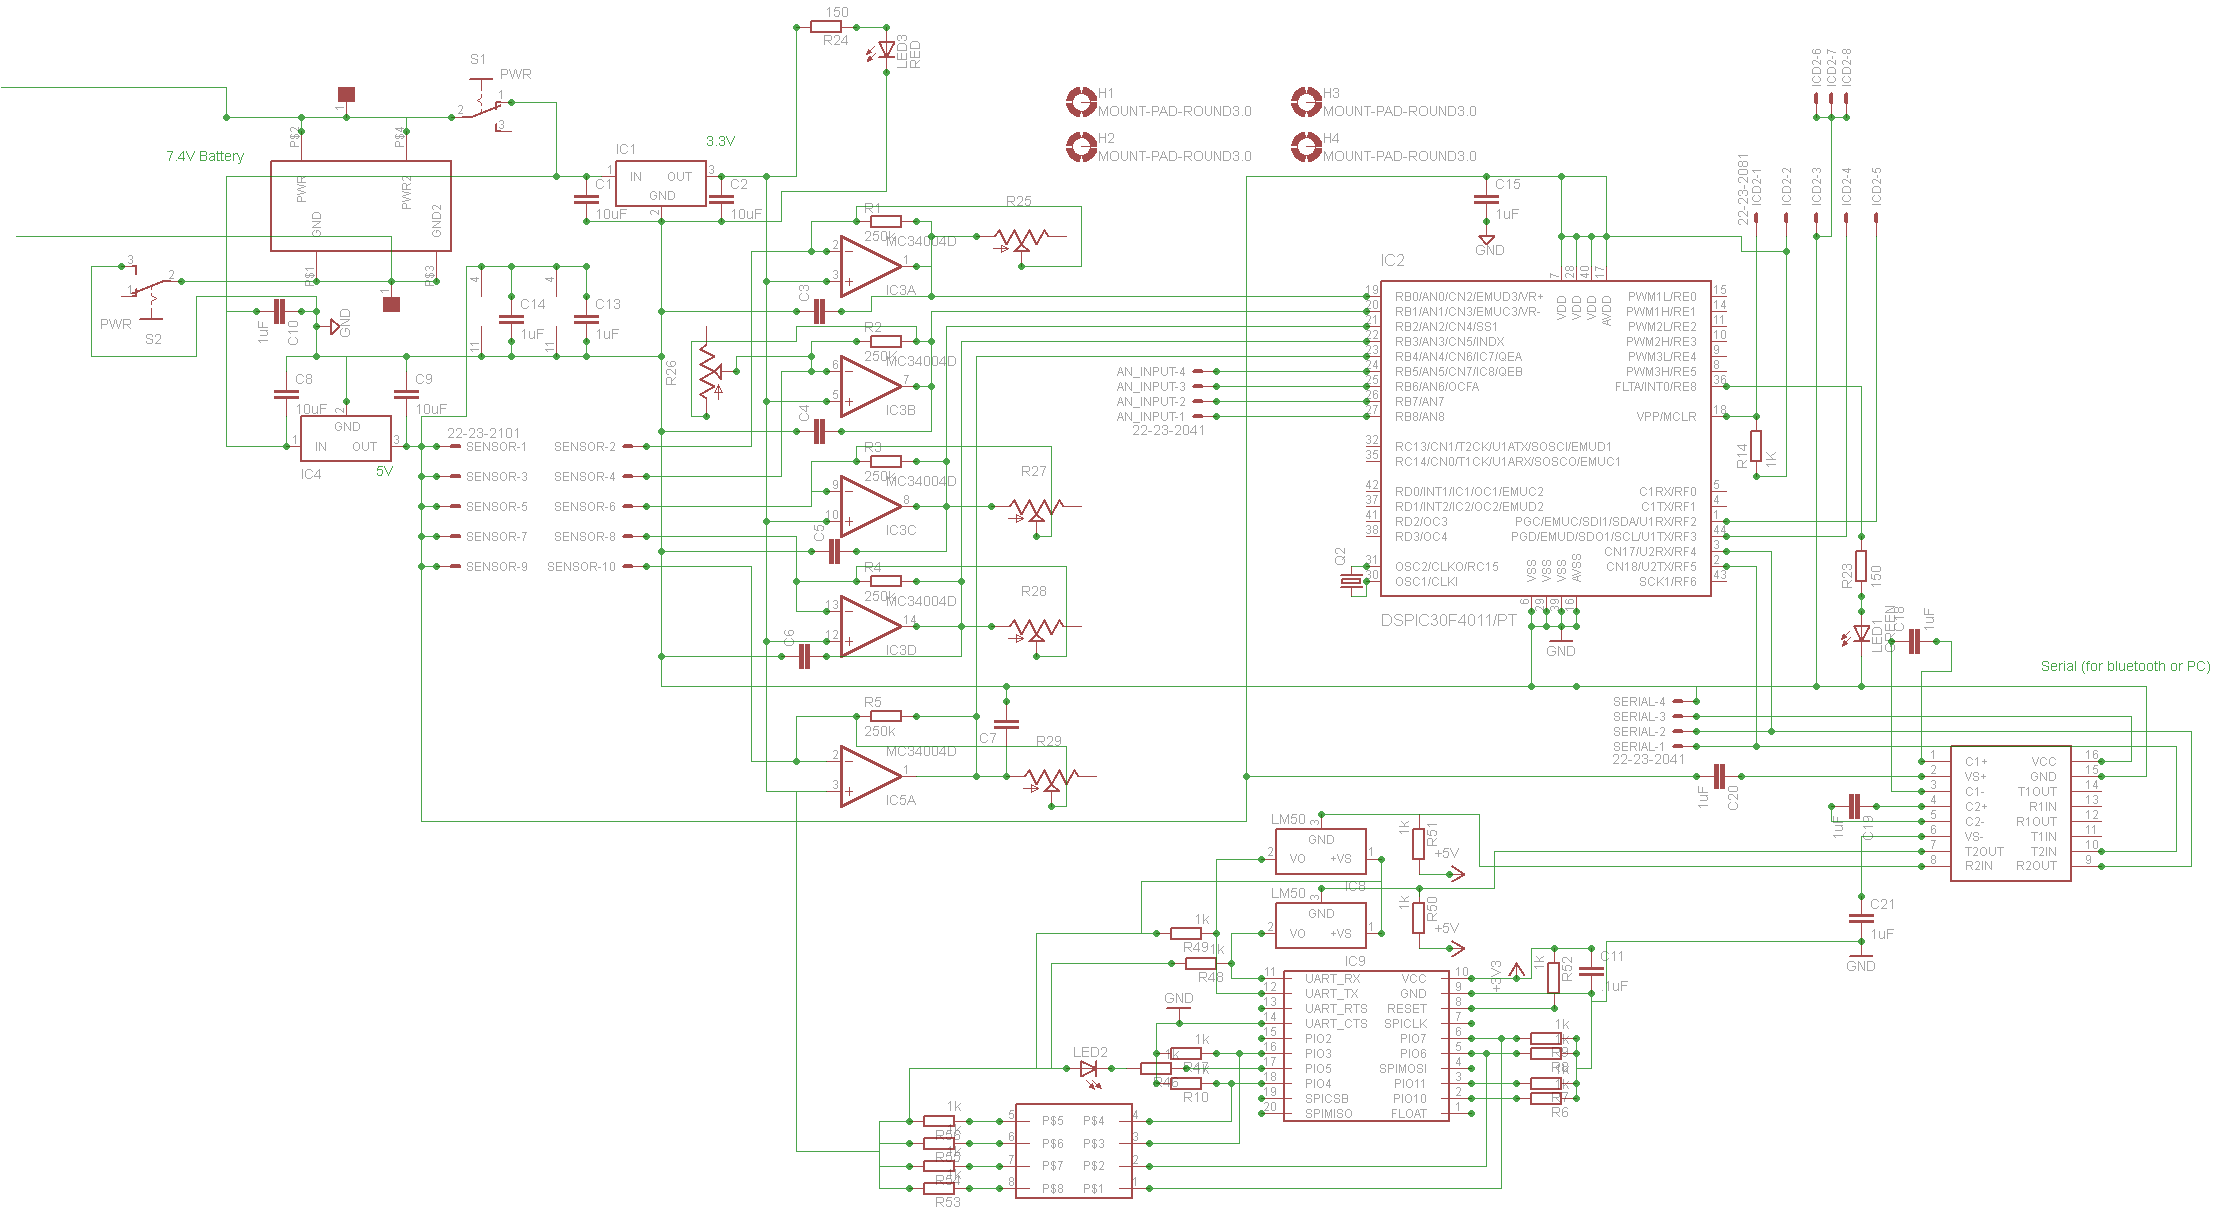 pic microcontroller circuit page 6   microcontroller circuits    next gr